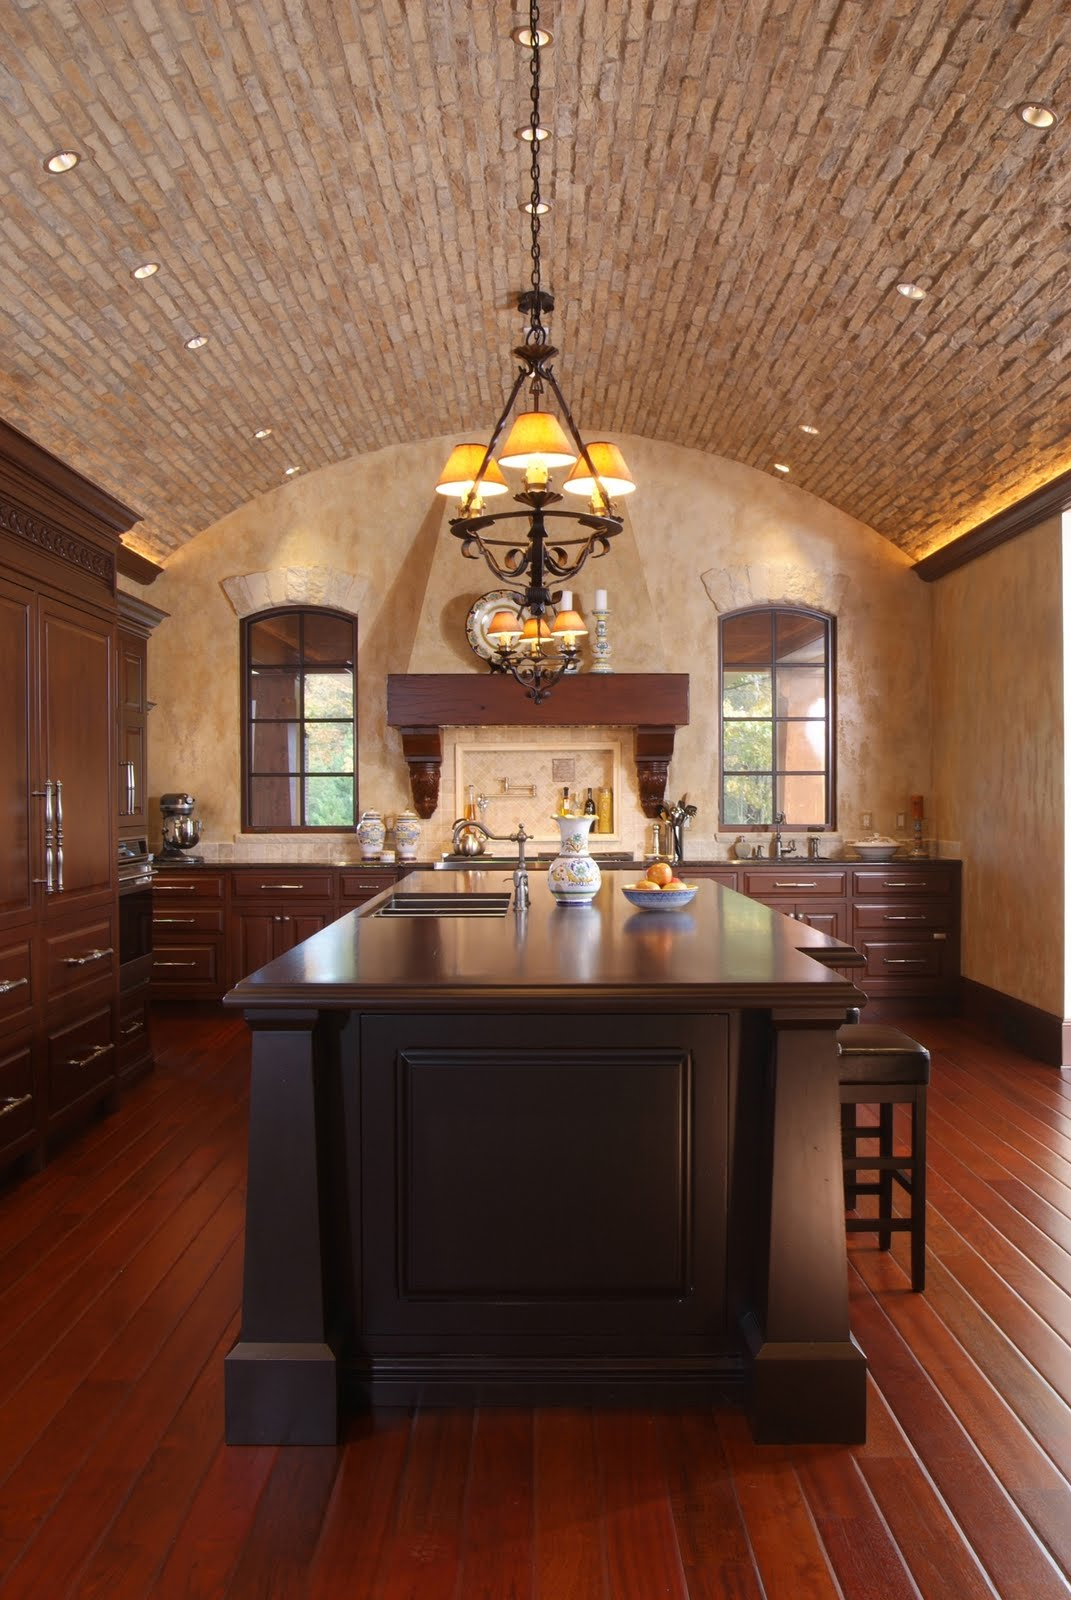 Architectural Tutorial Ceilings Visbeen Architects - Featured designer visbeen associates